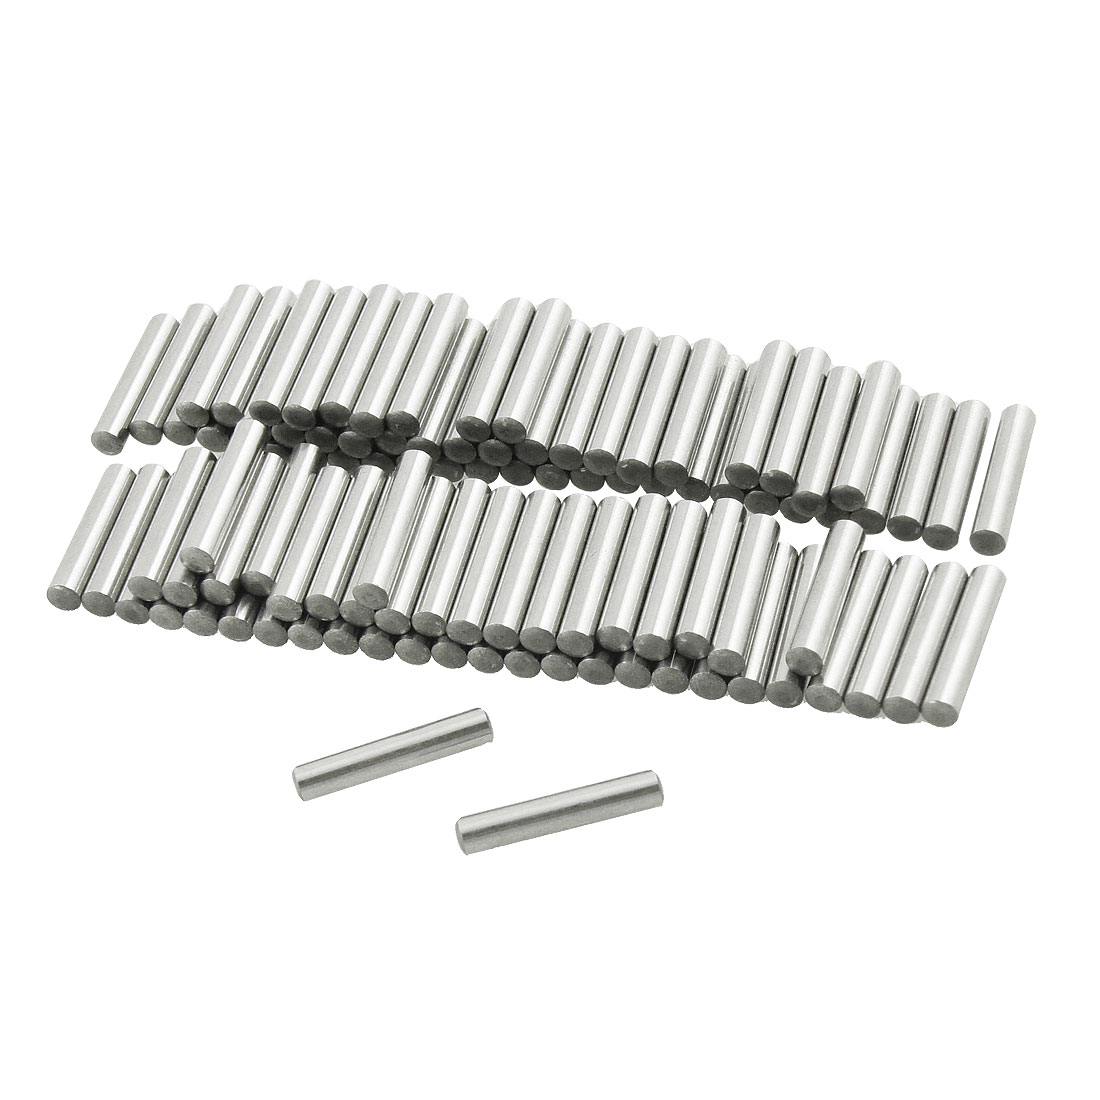 100 Pcs Stainless Steel 3mm x 15.8mm Dowel Pins Fasten Elements